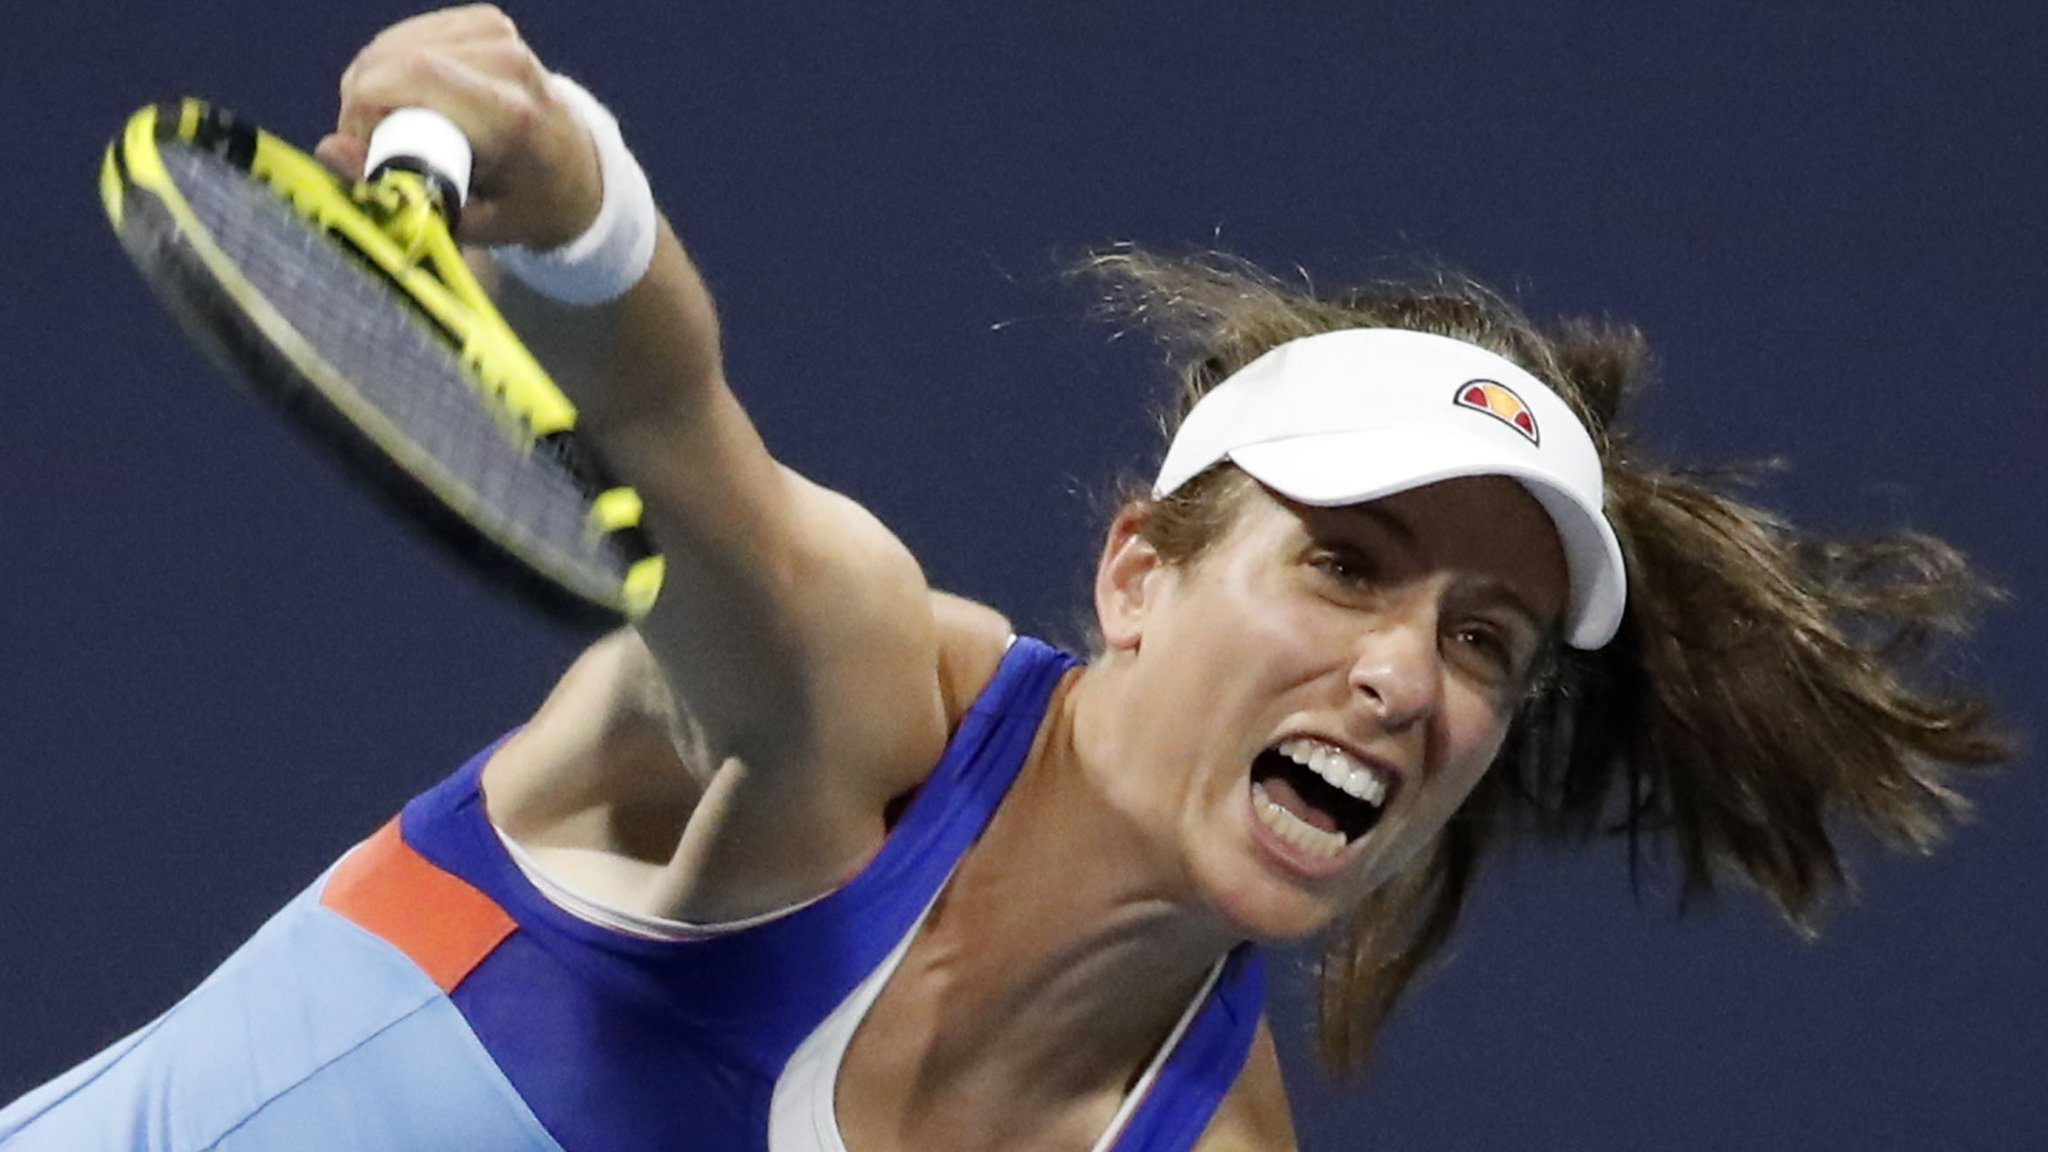 Johanna Konta into Miami Open second round after beating Jessica Pegula